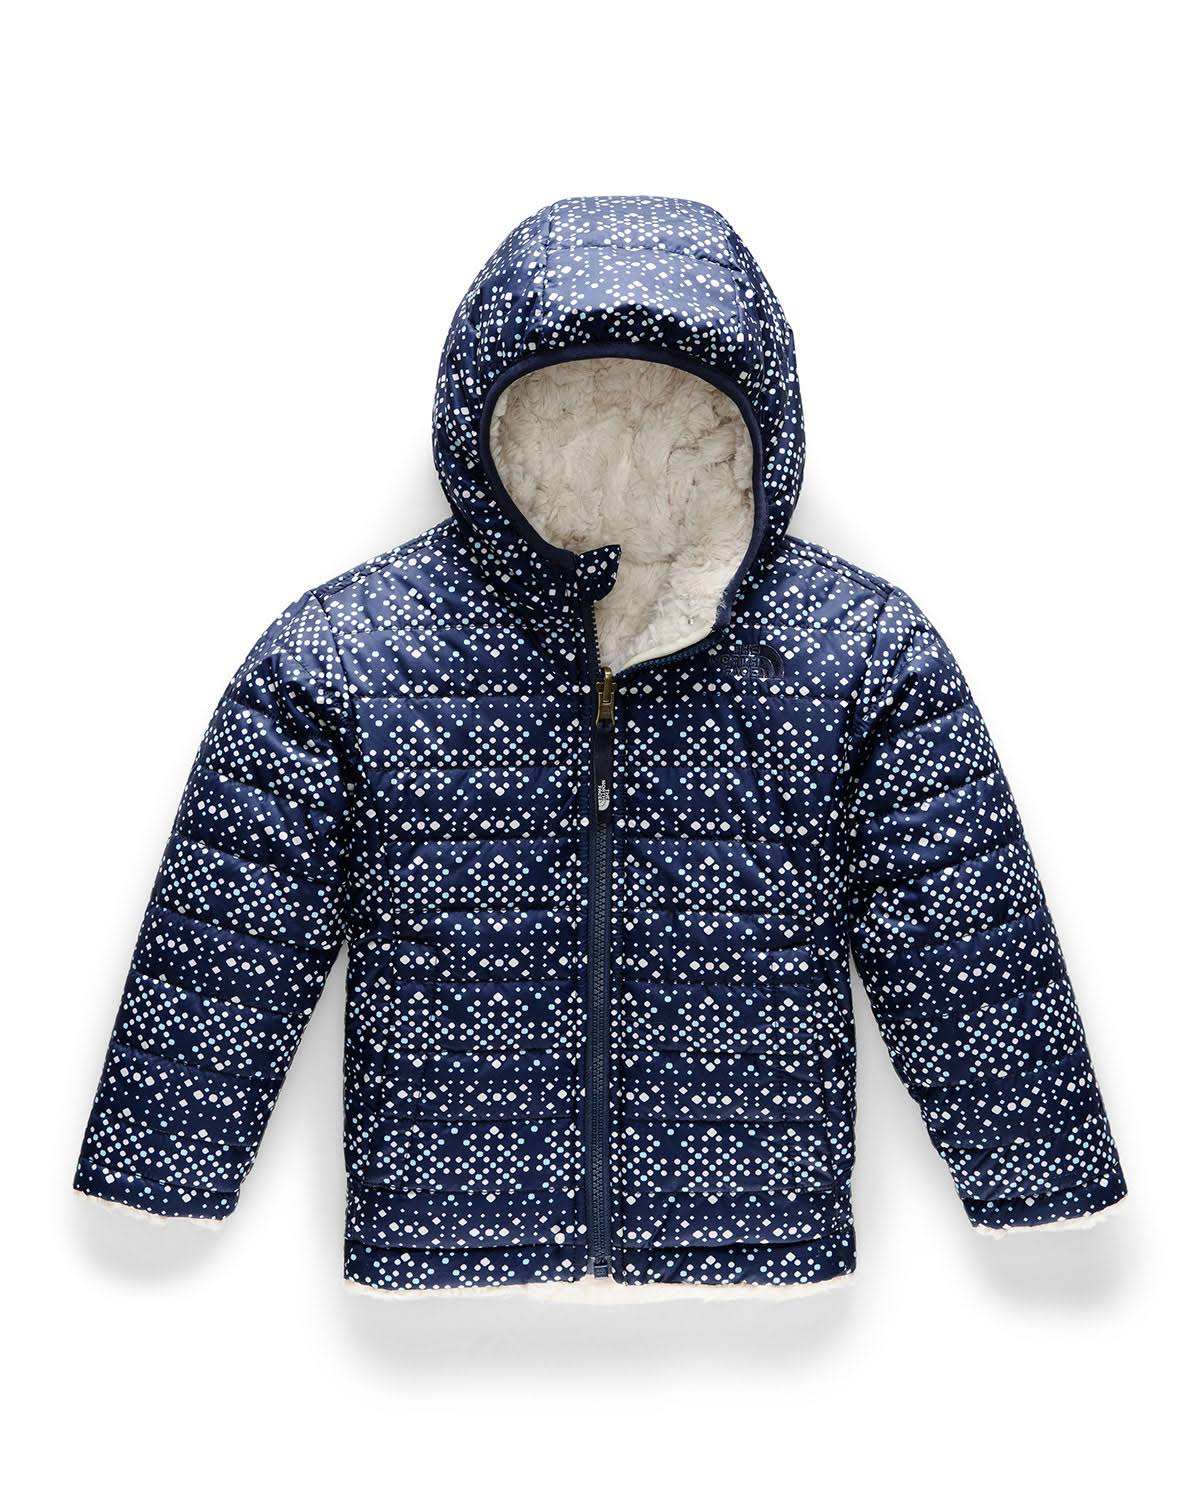 The North Face Toddler Girls' Reversible Mossbud Swirl Jacket - 4T - Montague Blue Sparkle Geo Print